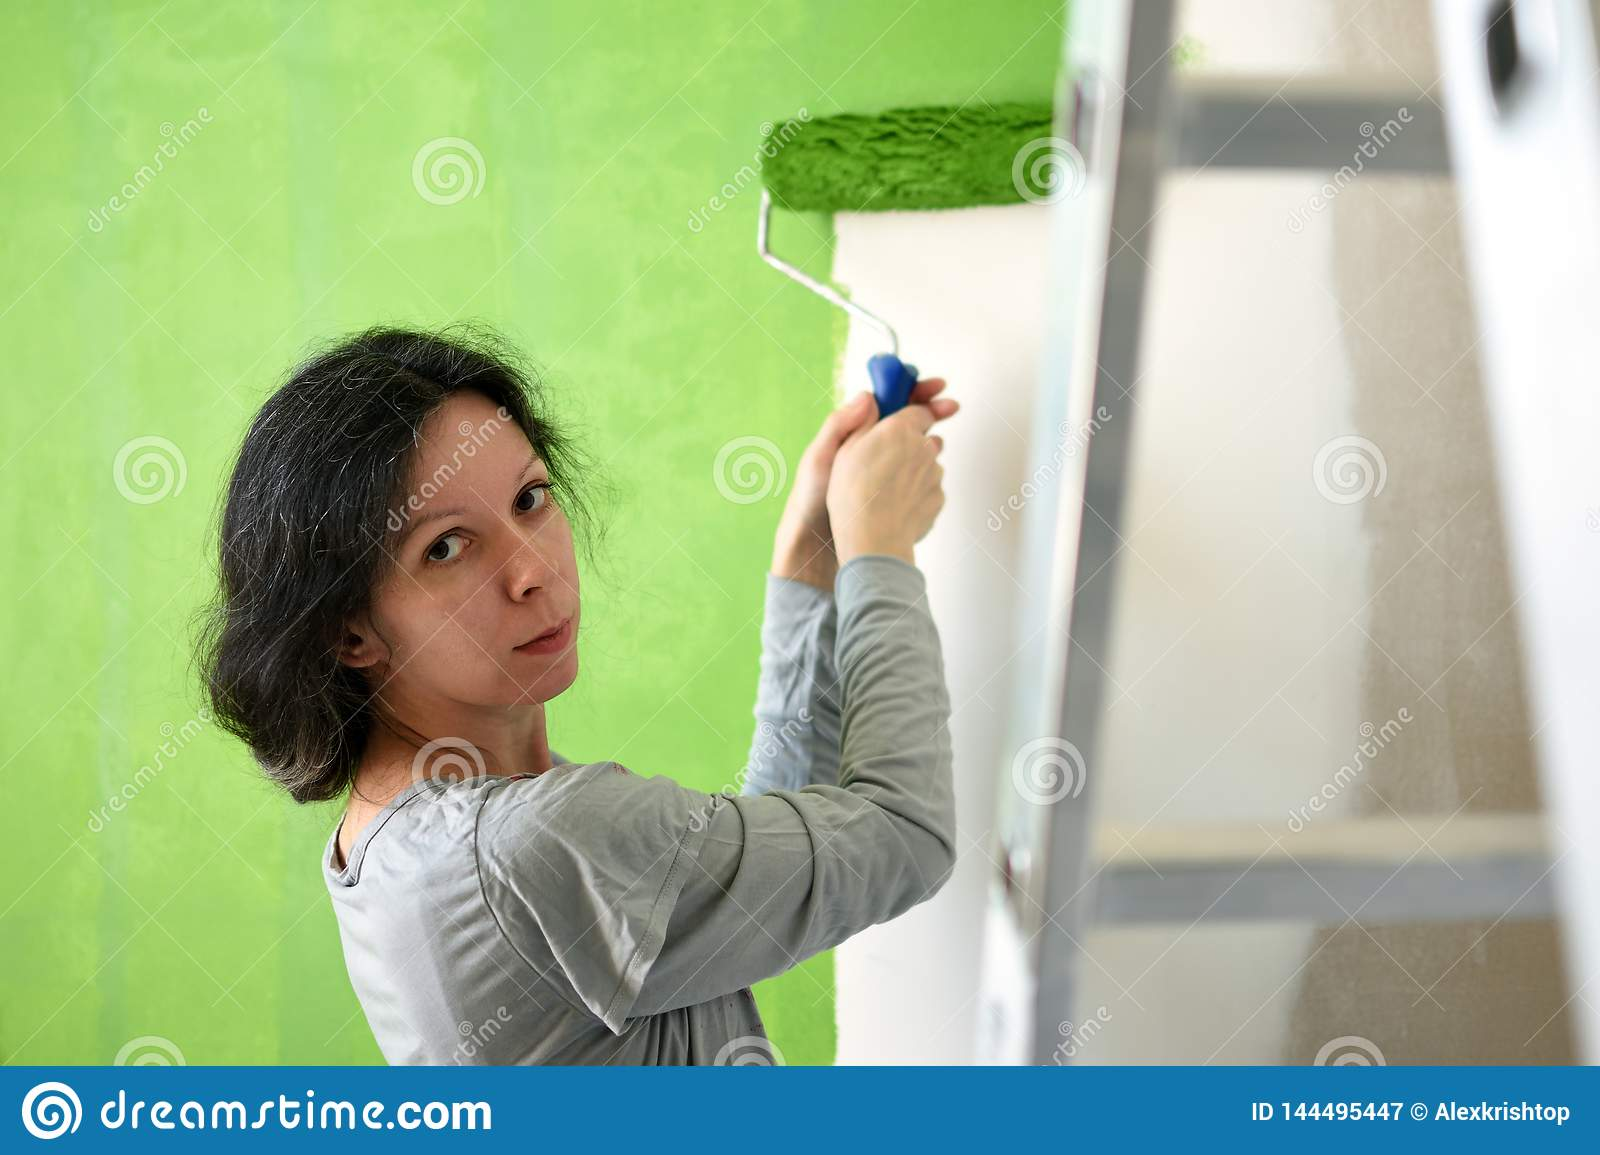 Pretty young woman painting green interior wall with roller in a new home